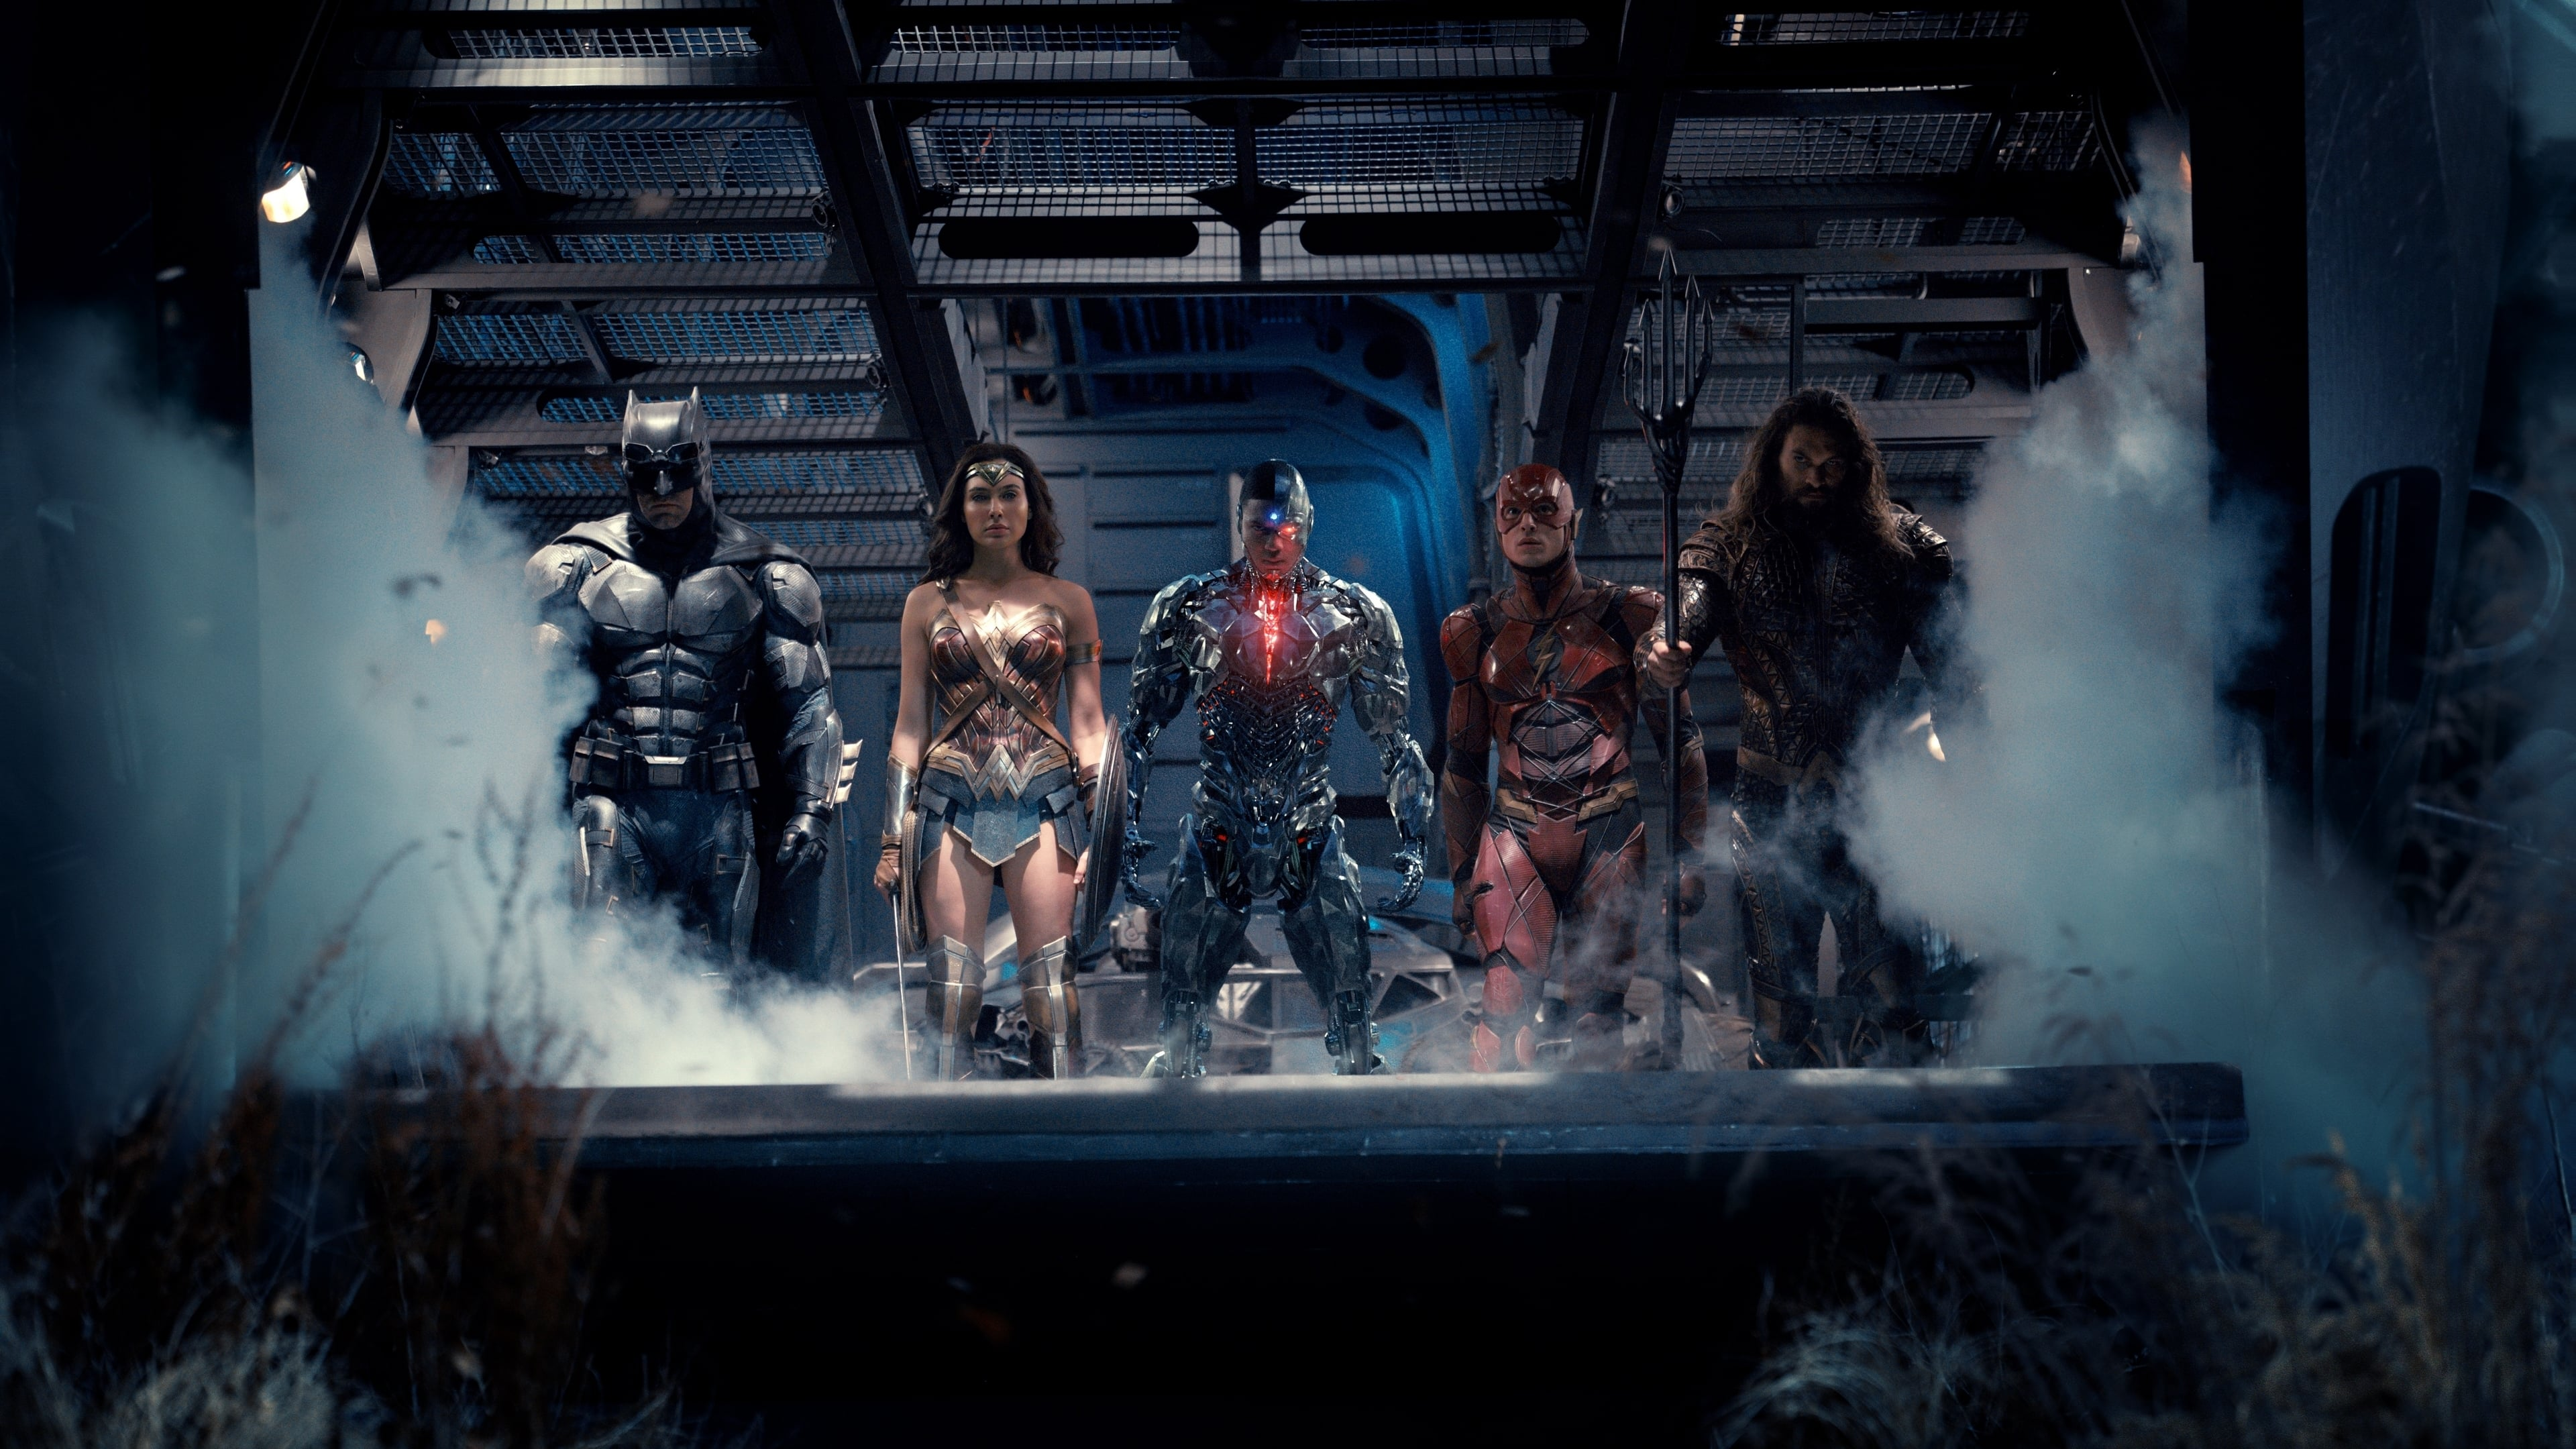 Justice League Watch Online Full Movie, Putlocker, fmovies, 123movies